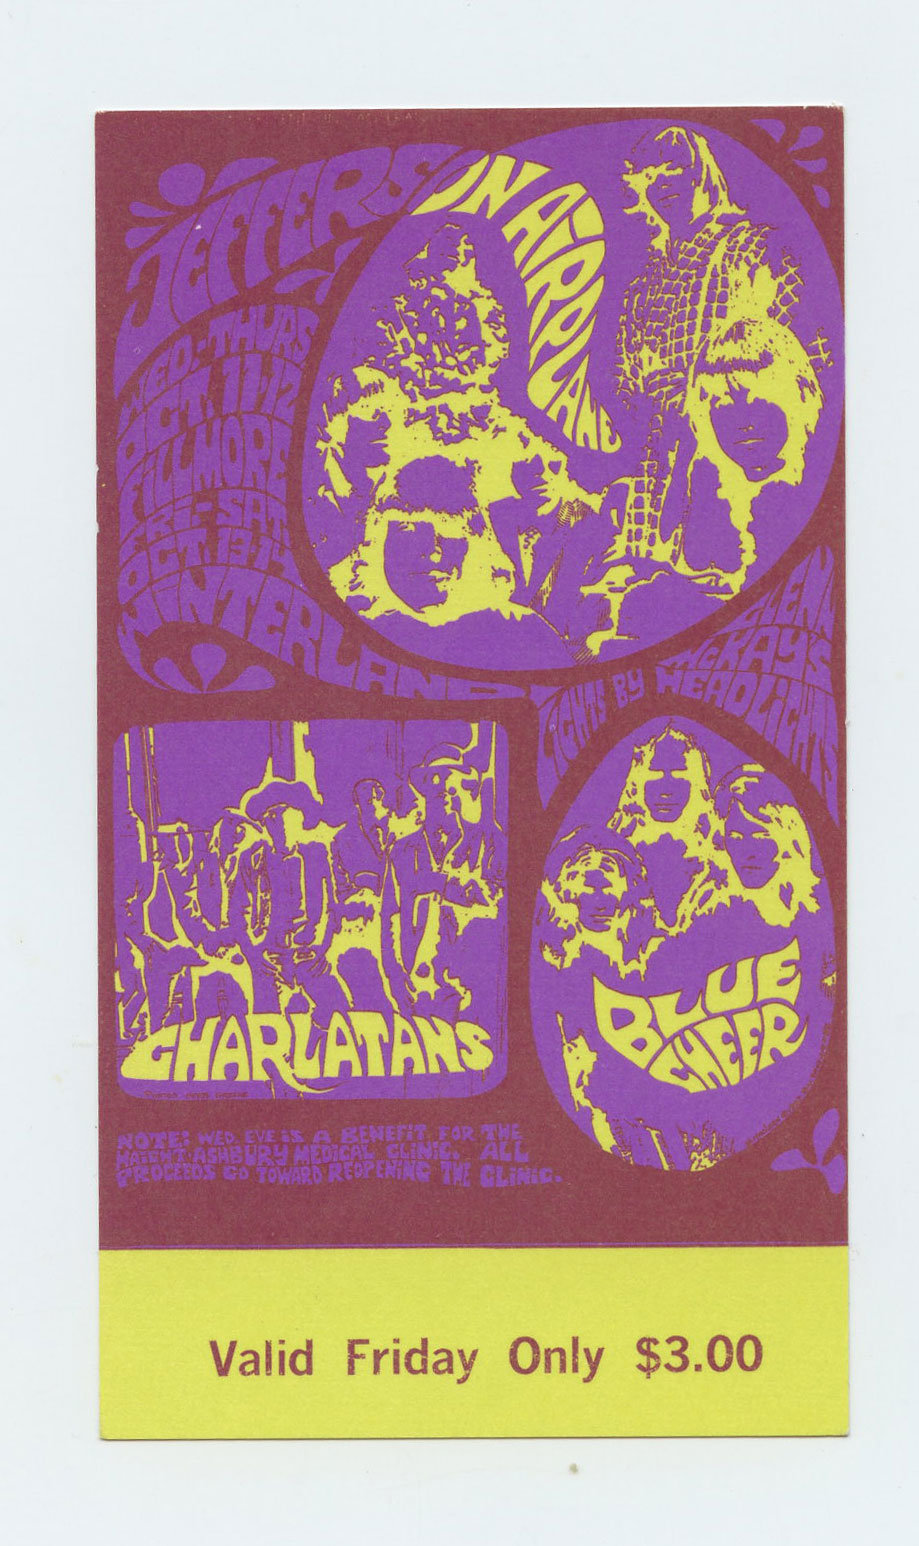 Bill Graham 88 Ticket Jefferson Airplane Charlatans Blue Cheer 1967 Oct 11